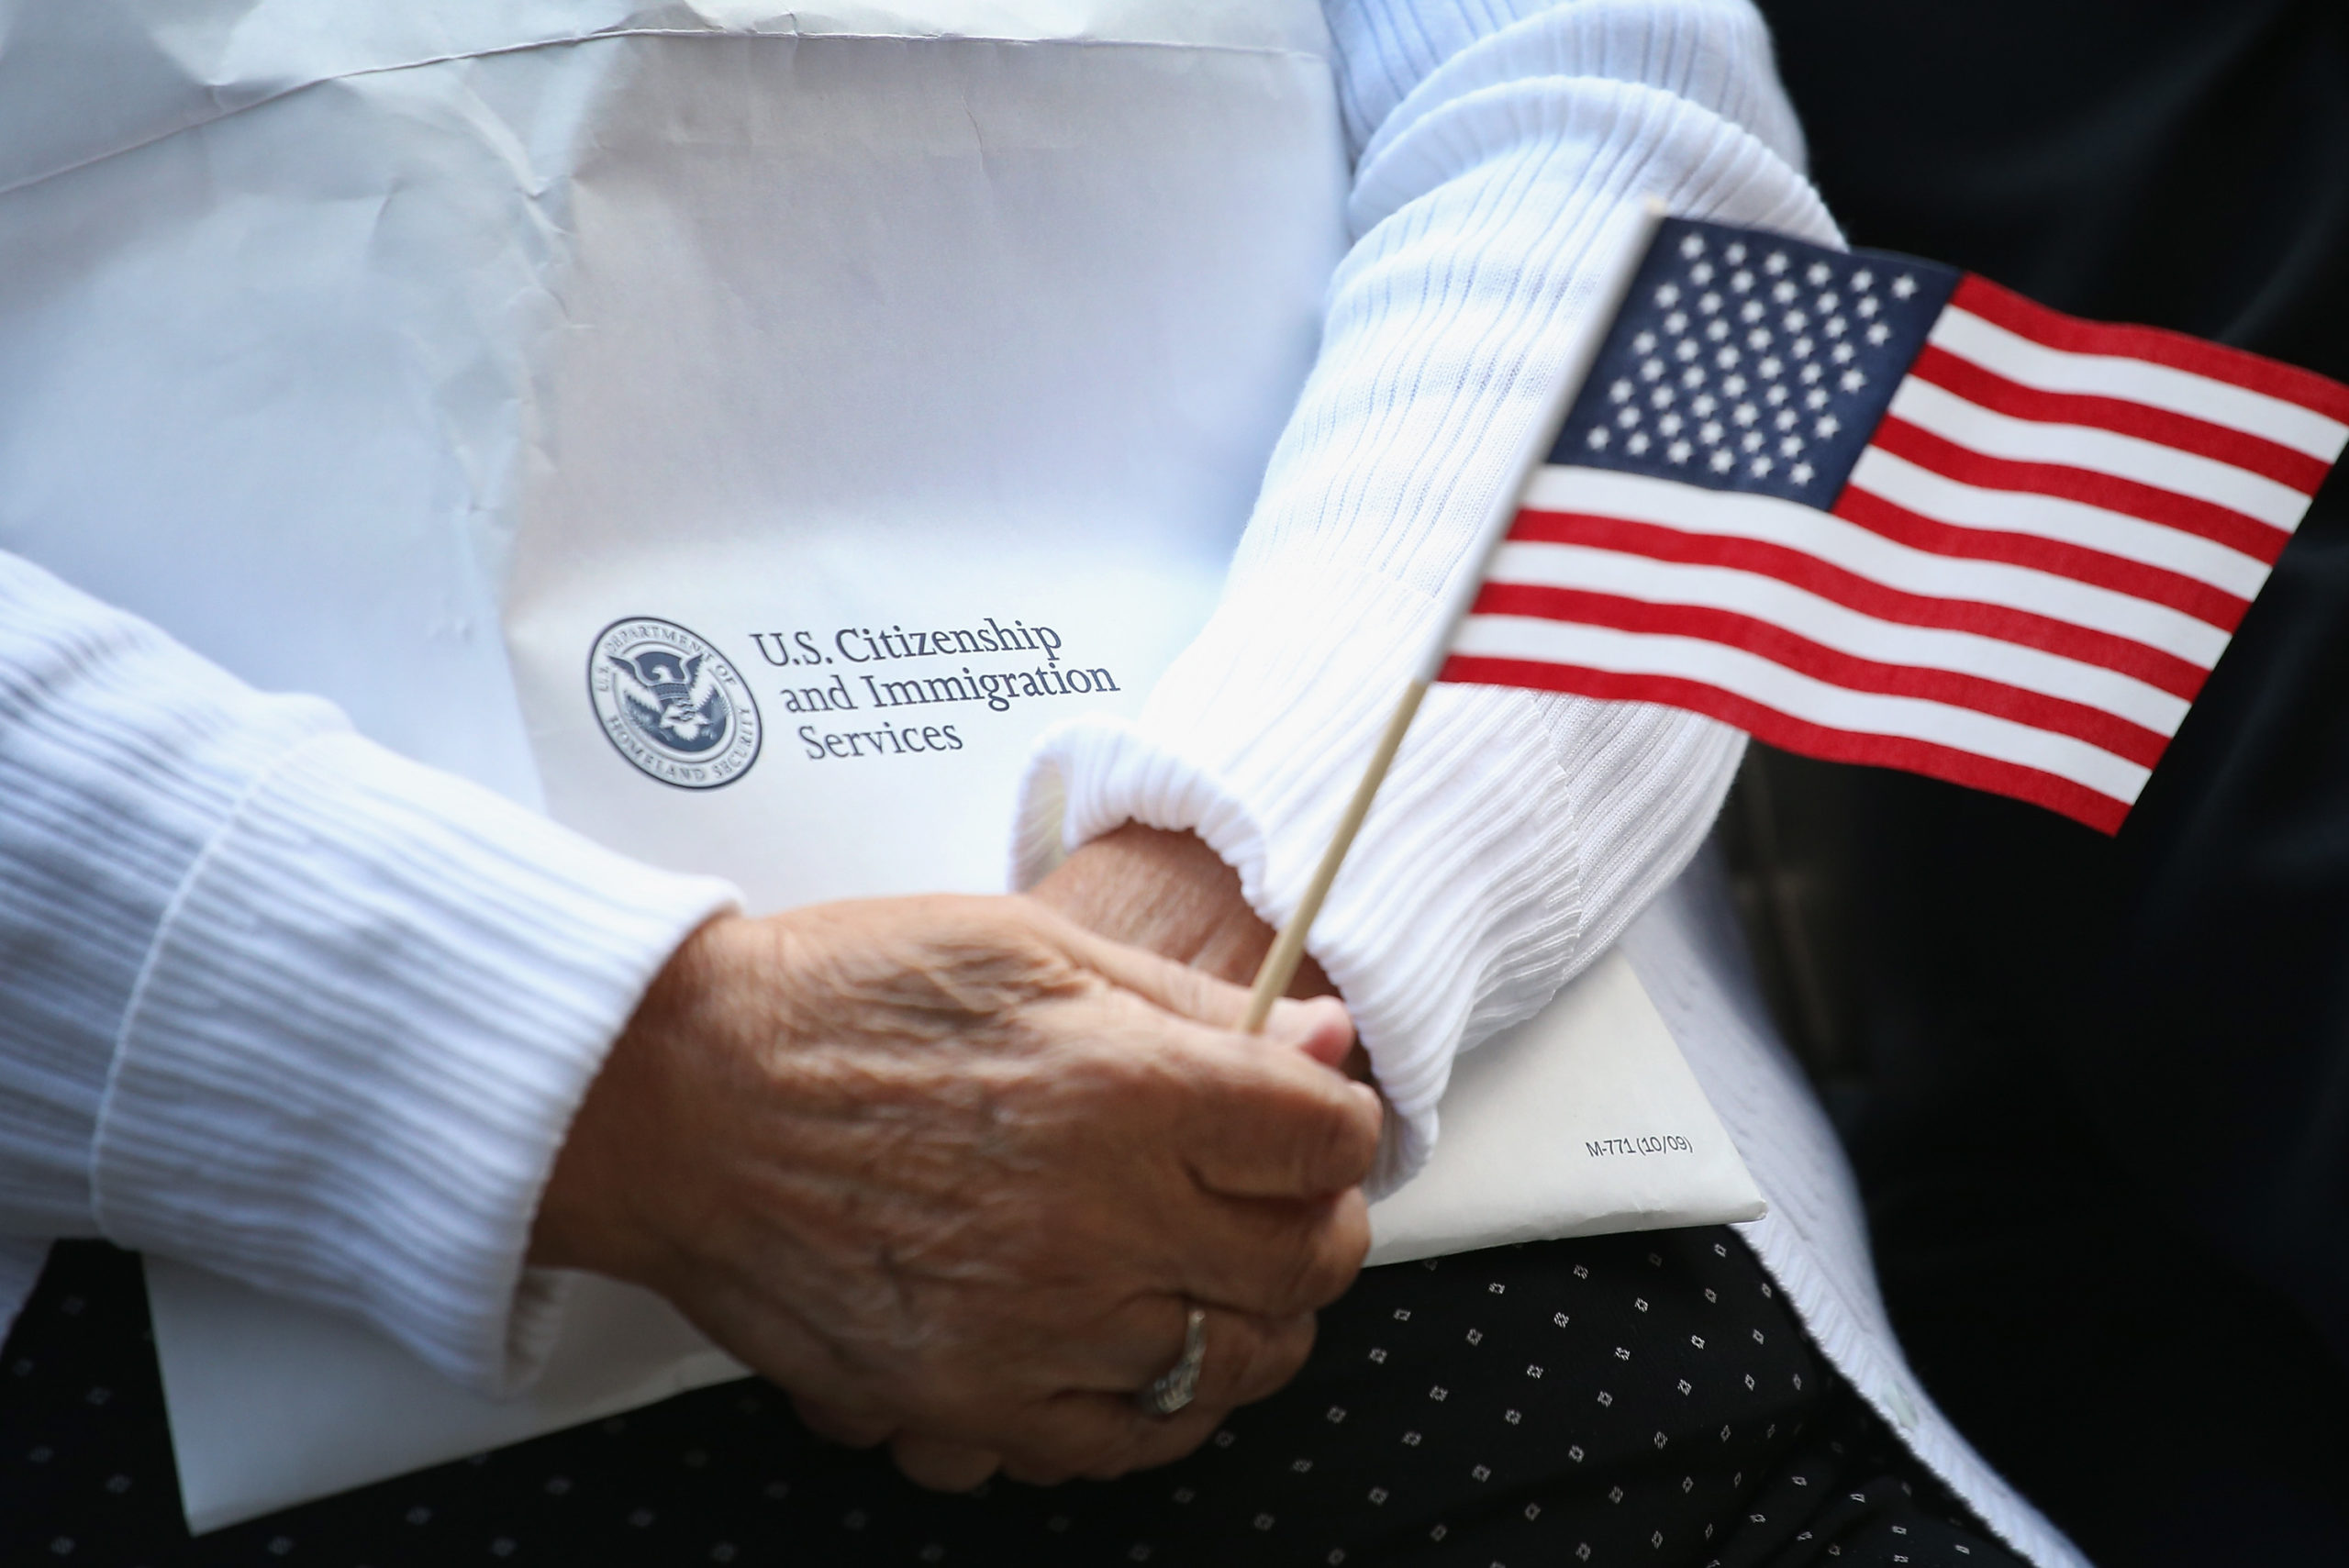 CHICAGO, IL - SEPTEMBER 16: Immigrants from 25 countries participate in a naturalization ceremony in Daley Plaza on September 16, 2014 in Chicago, Illinois. Seventy people were awarded their U.S. citizenship at the Citizenship Day ceremony. (Photo by Scott Olson/Getty Images)